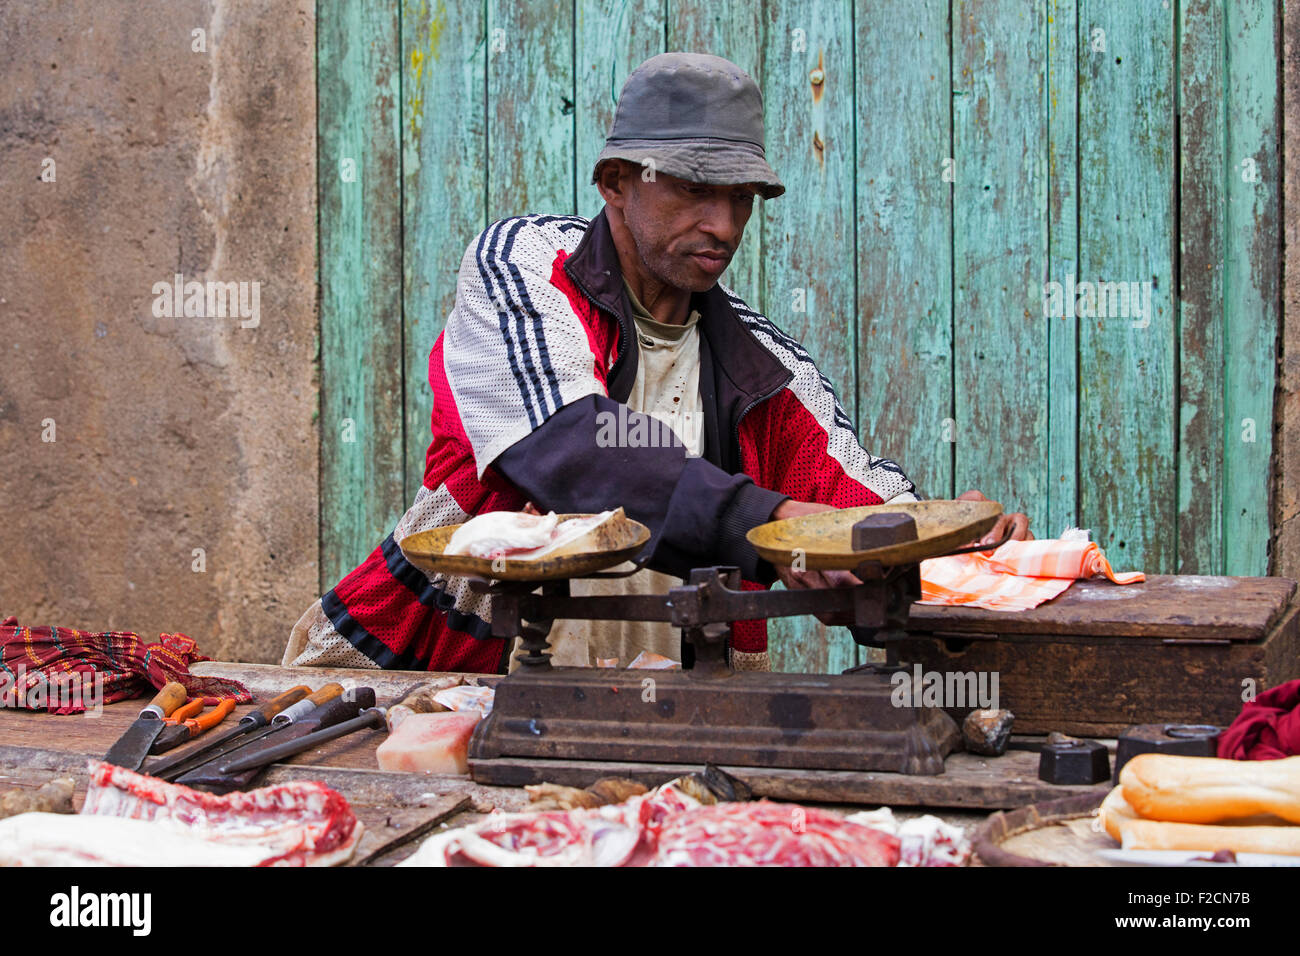 Malagasy butcher selling meat in open air butcher's shop, Madagascar, Southeast Africa - Stock Image